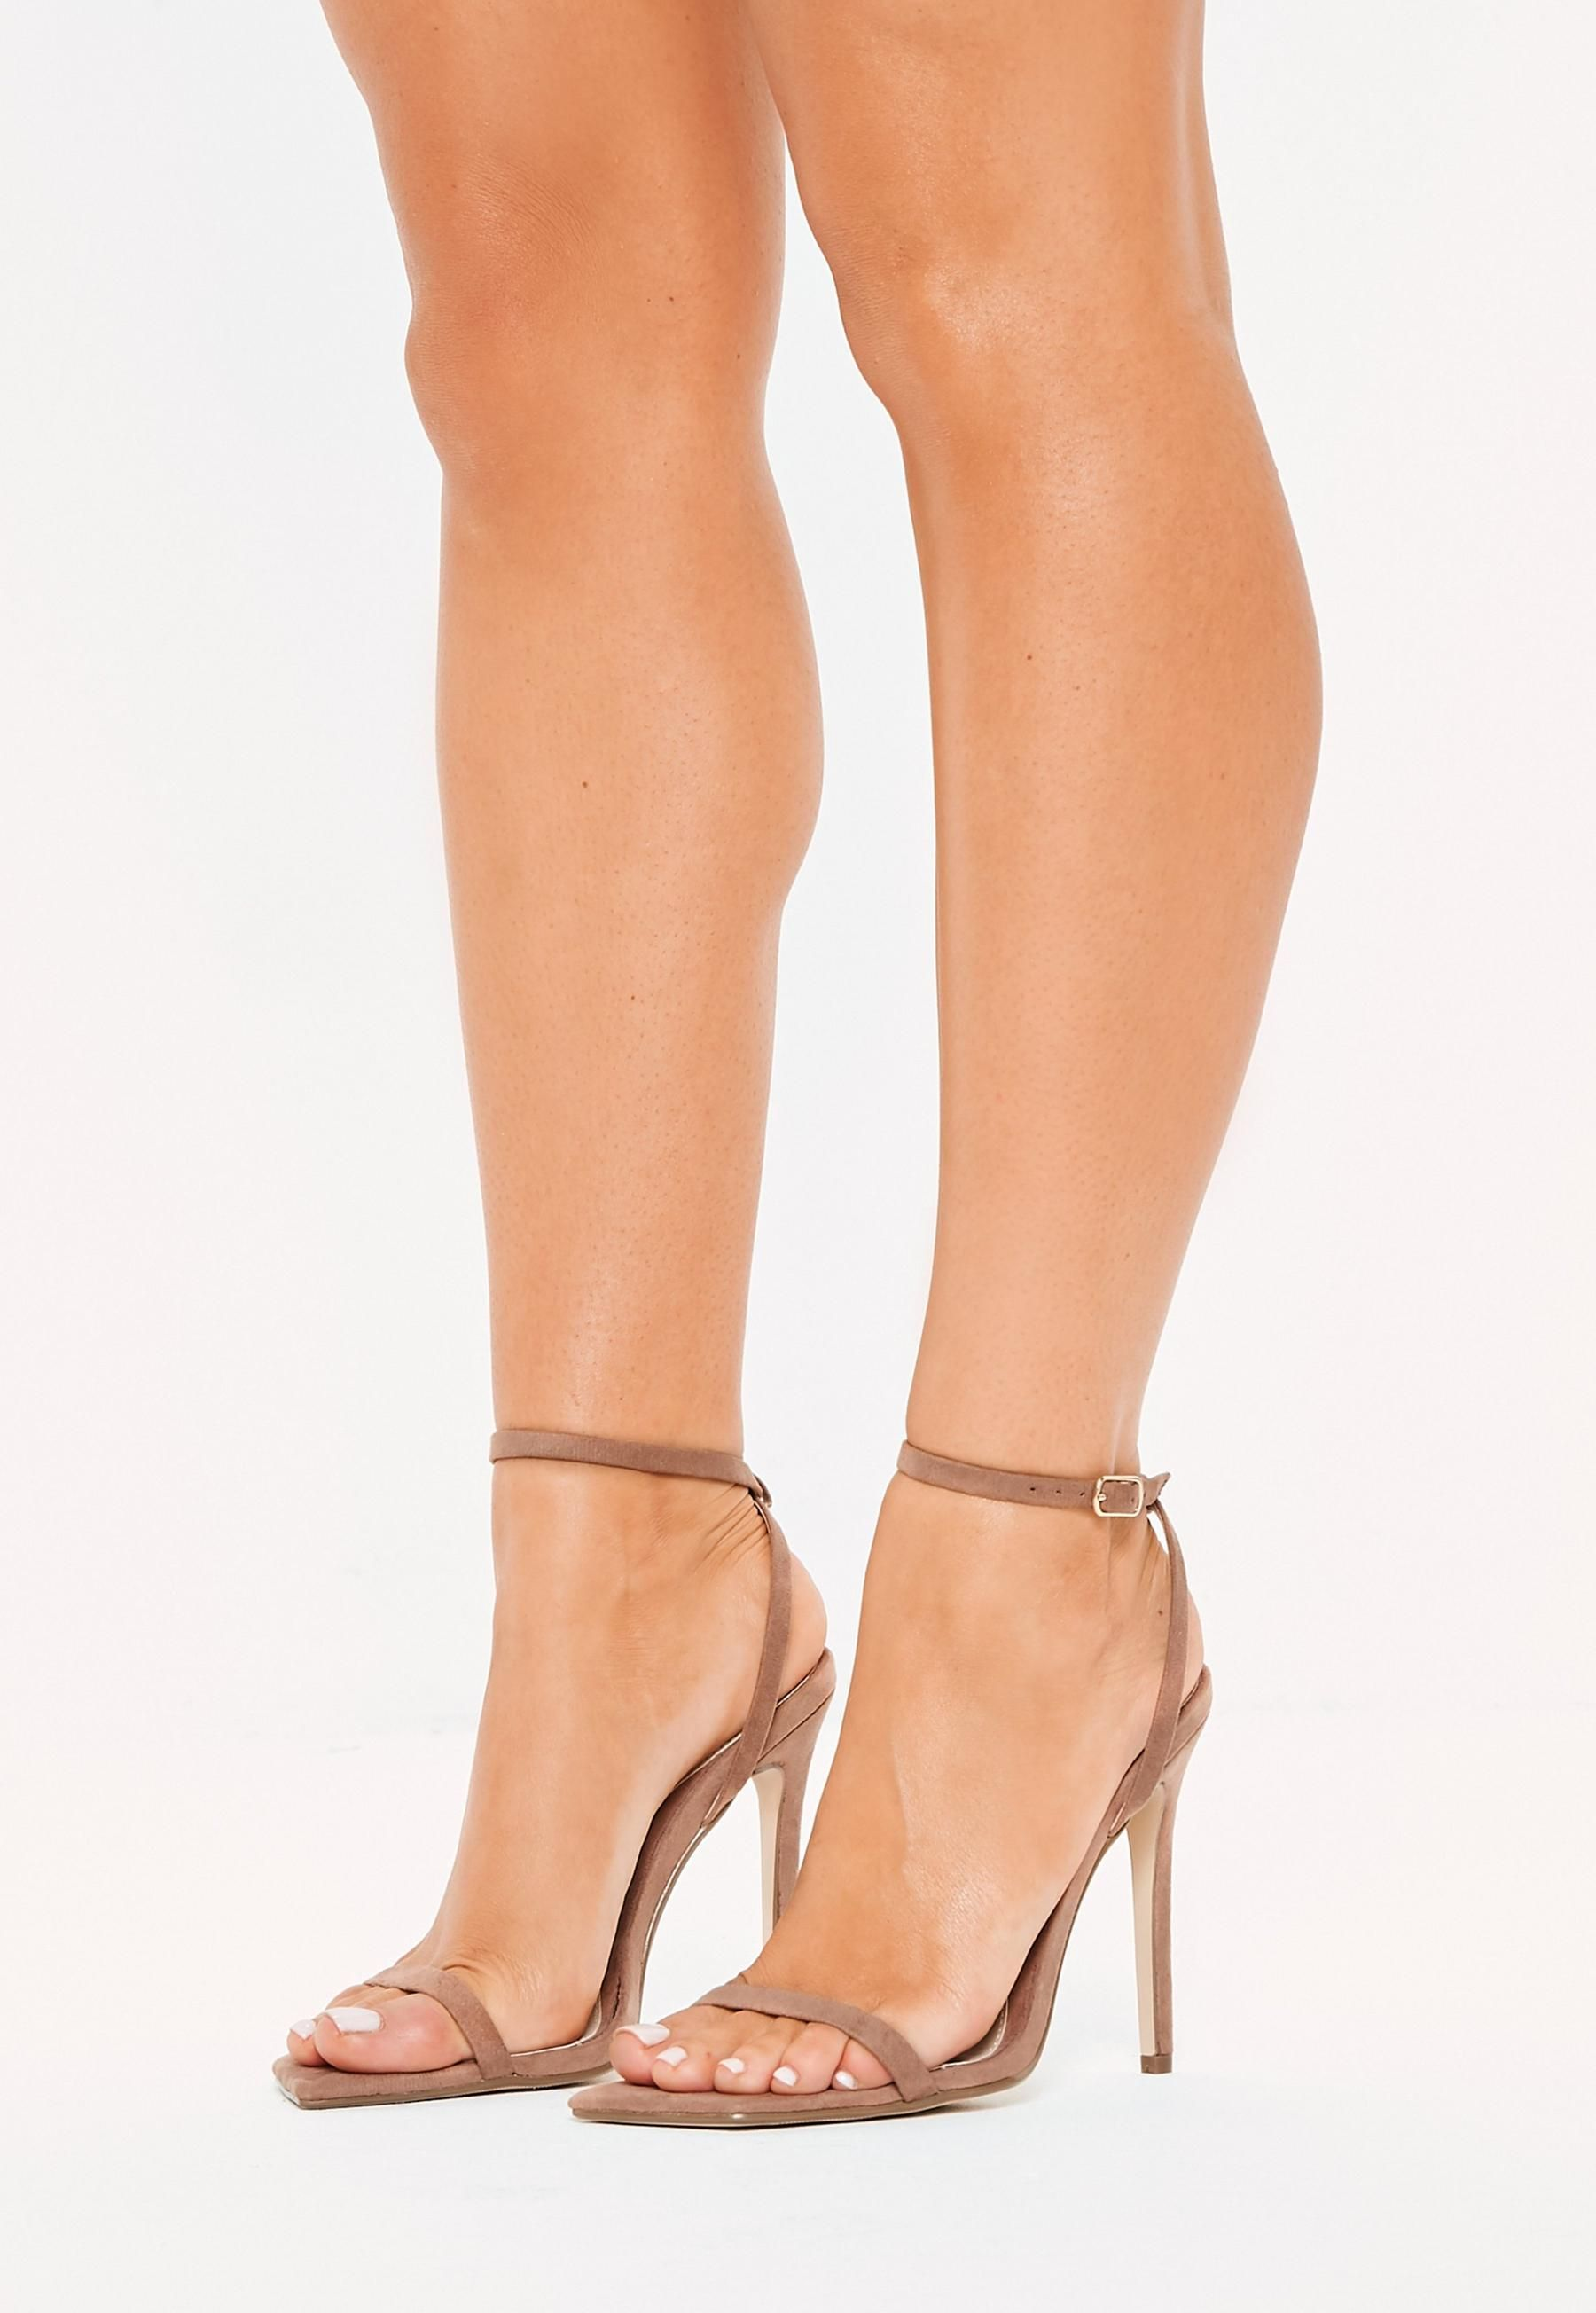 7b6ab050229 Taupe Slanted Toe Barely There Heels in 2019 | S H O E S | Taupe ...